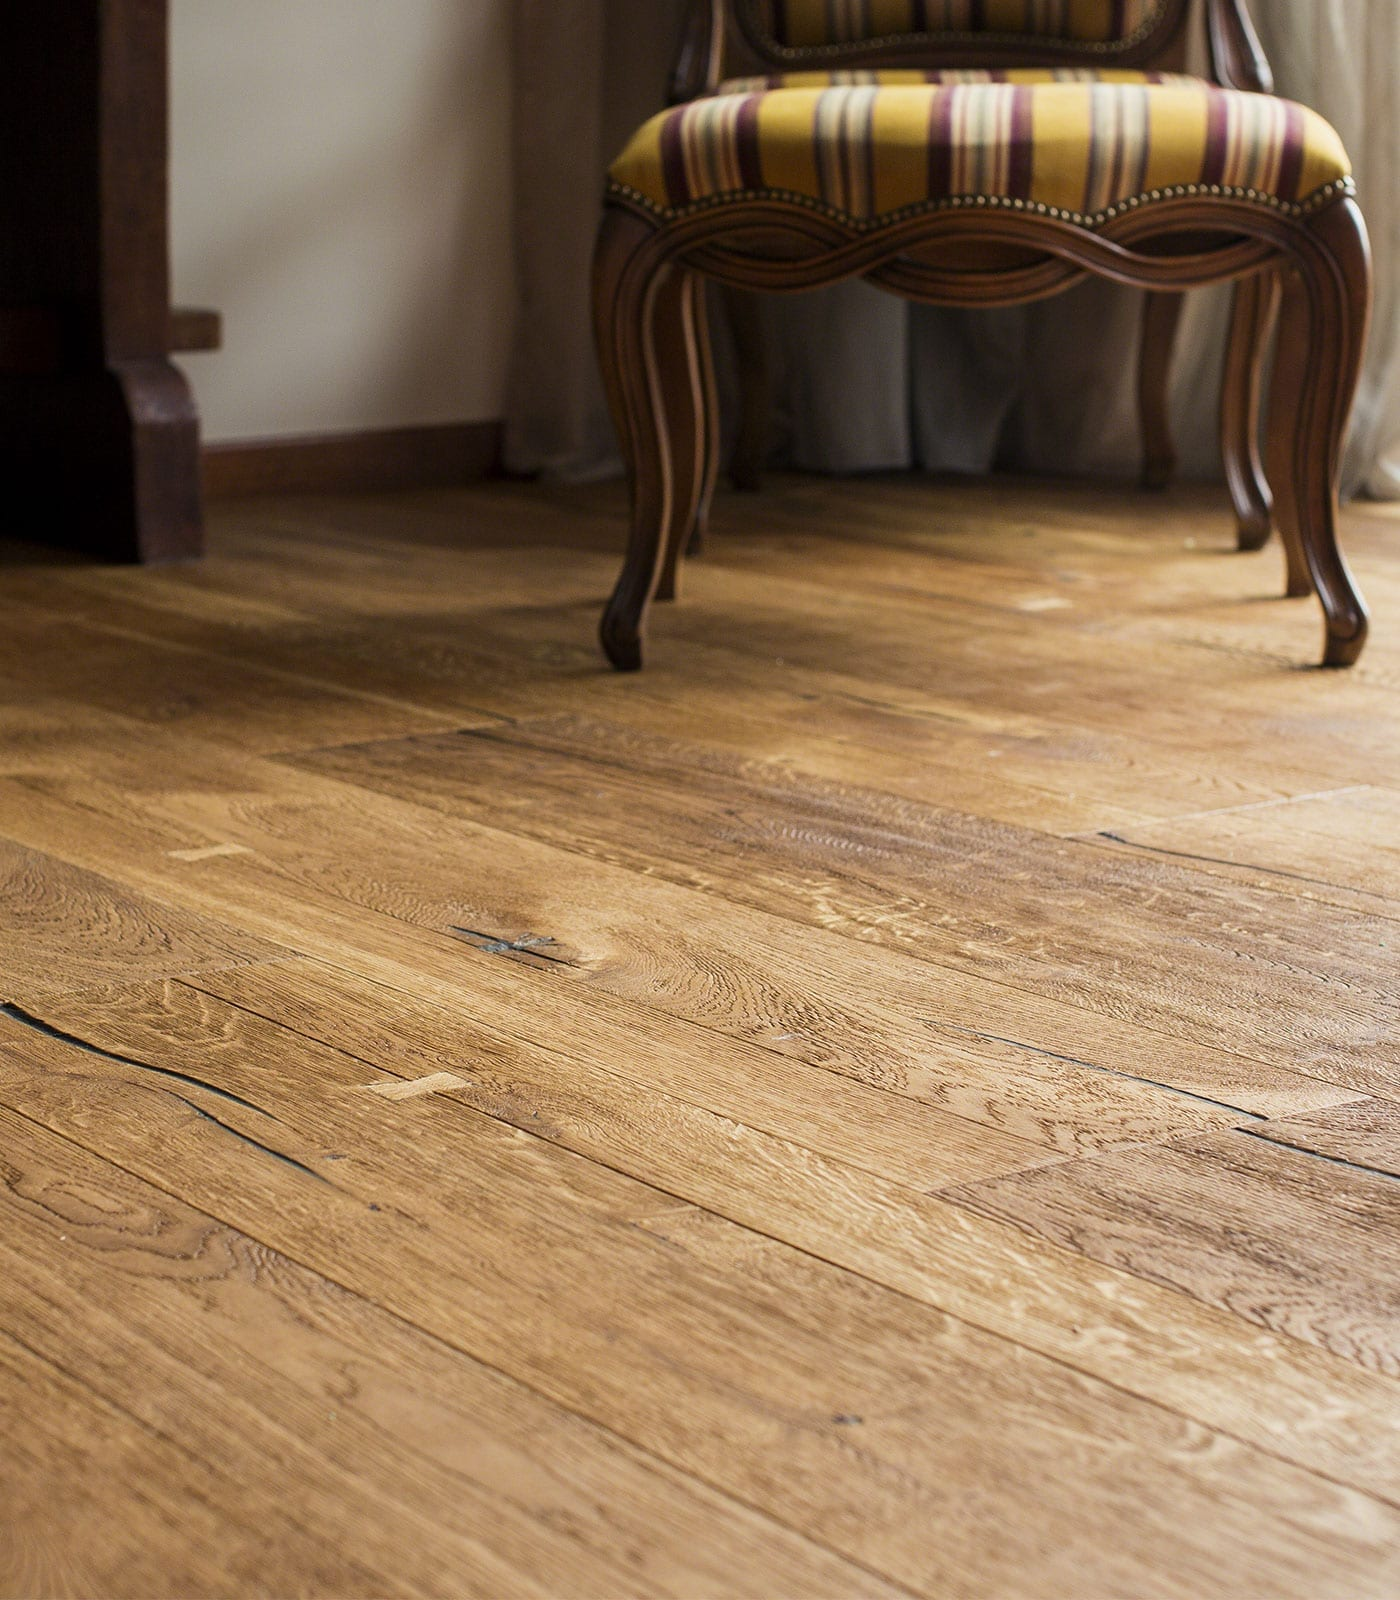 Balmoral-European Oak Floors-Heritage Collection-room